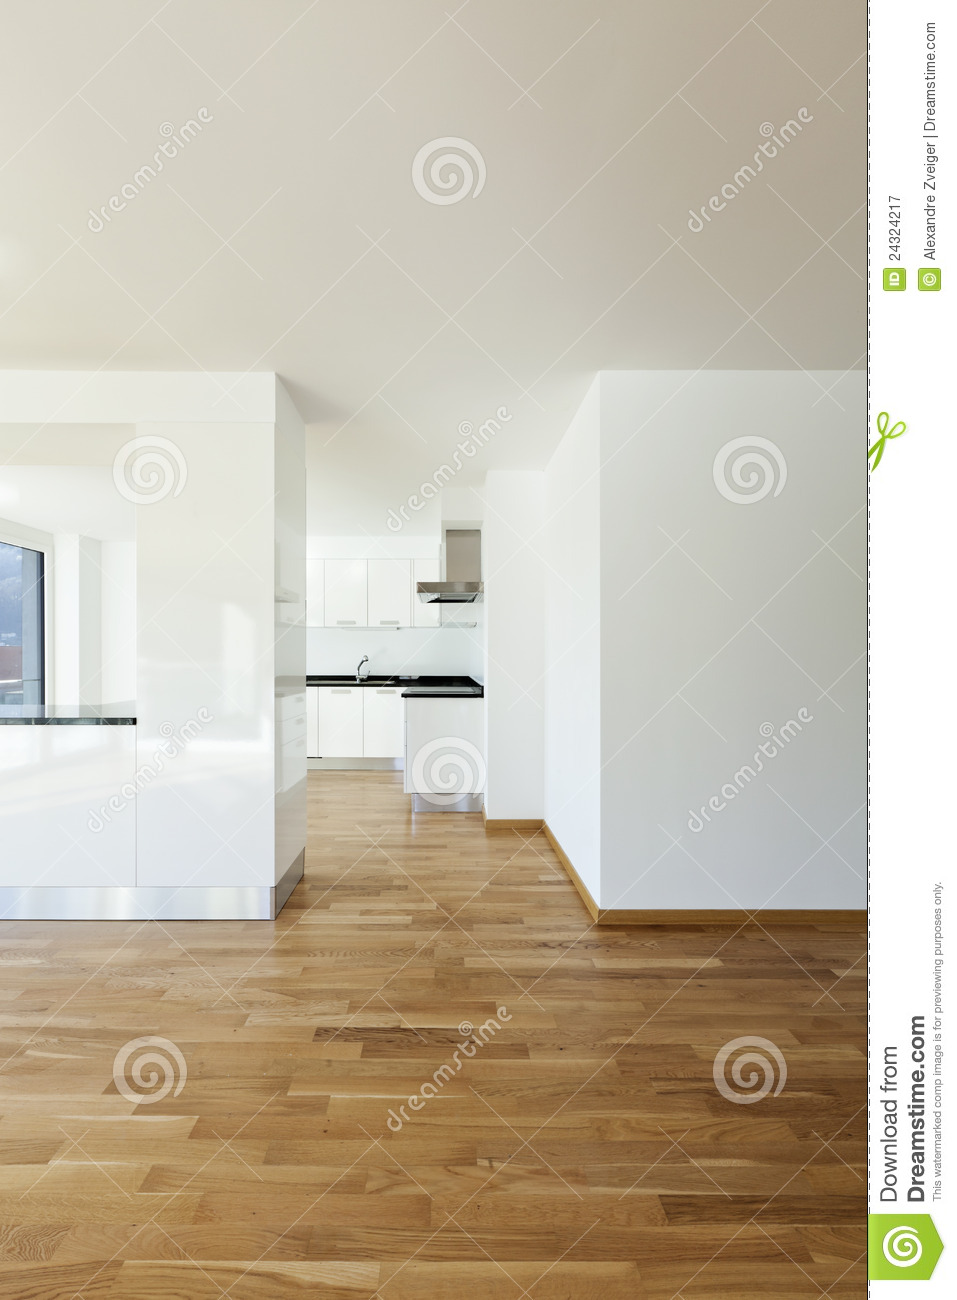 Interior Open Space Royalty Free Stock Photography